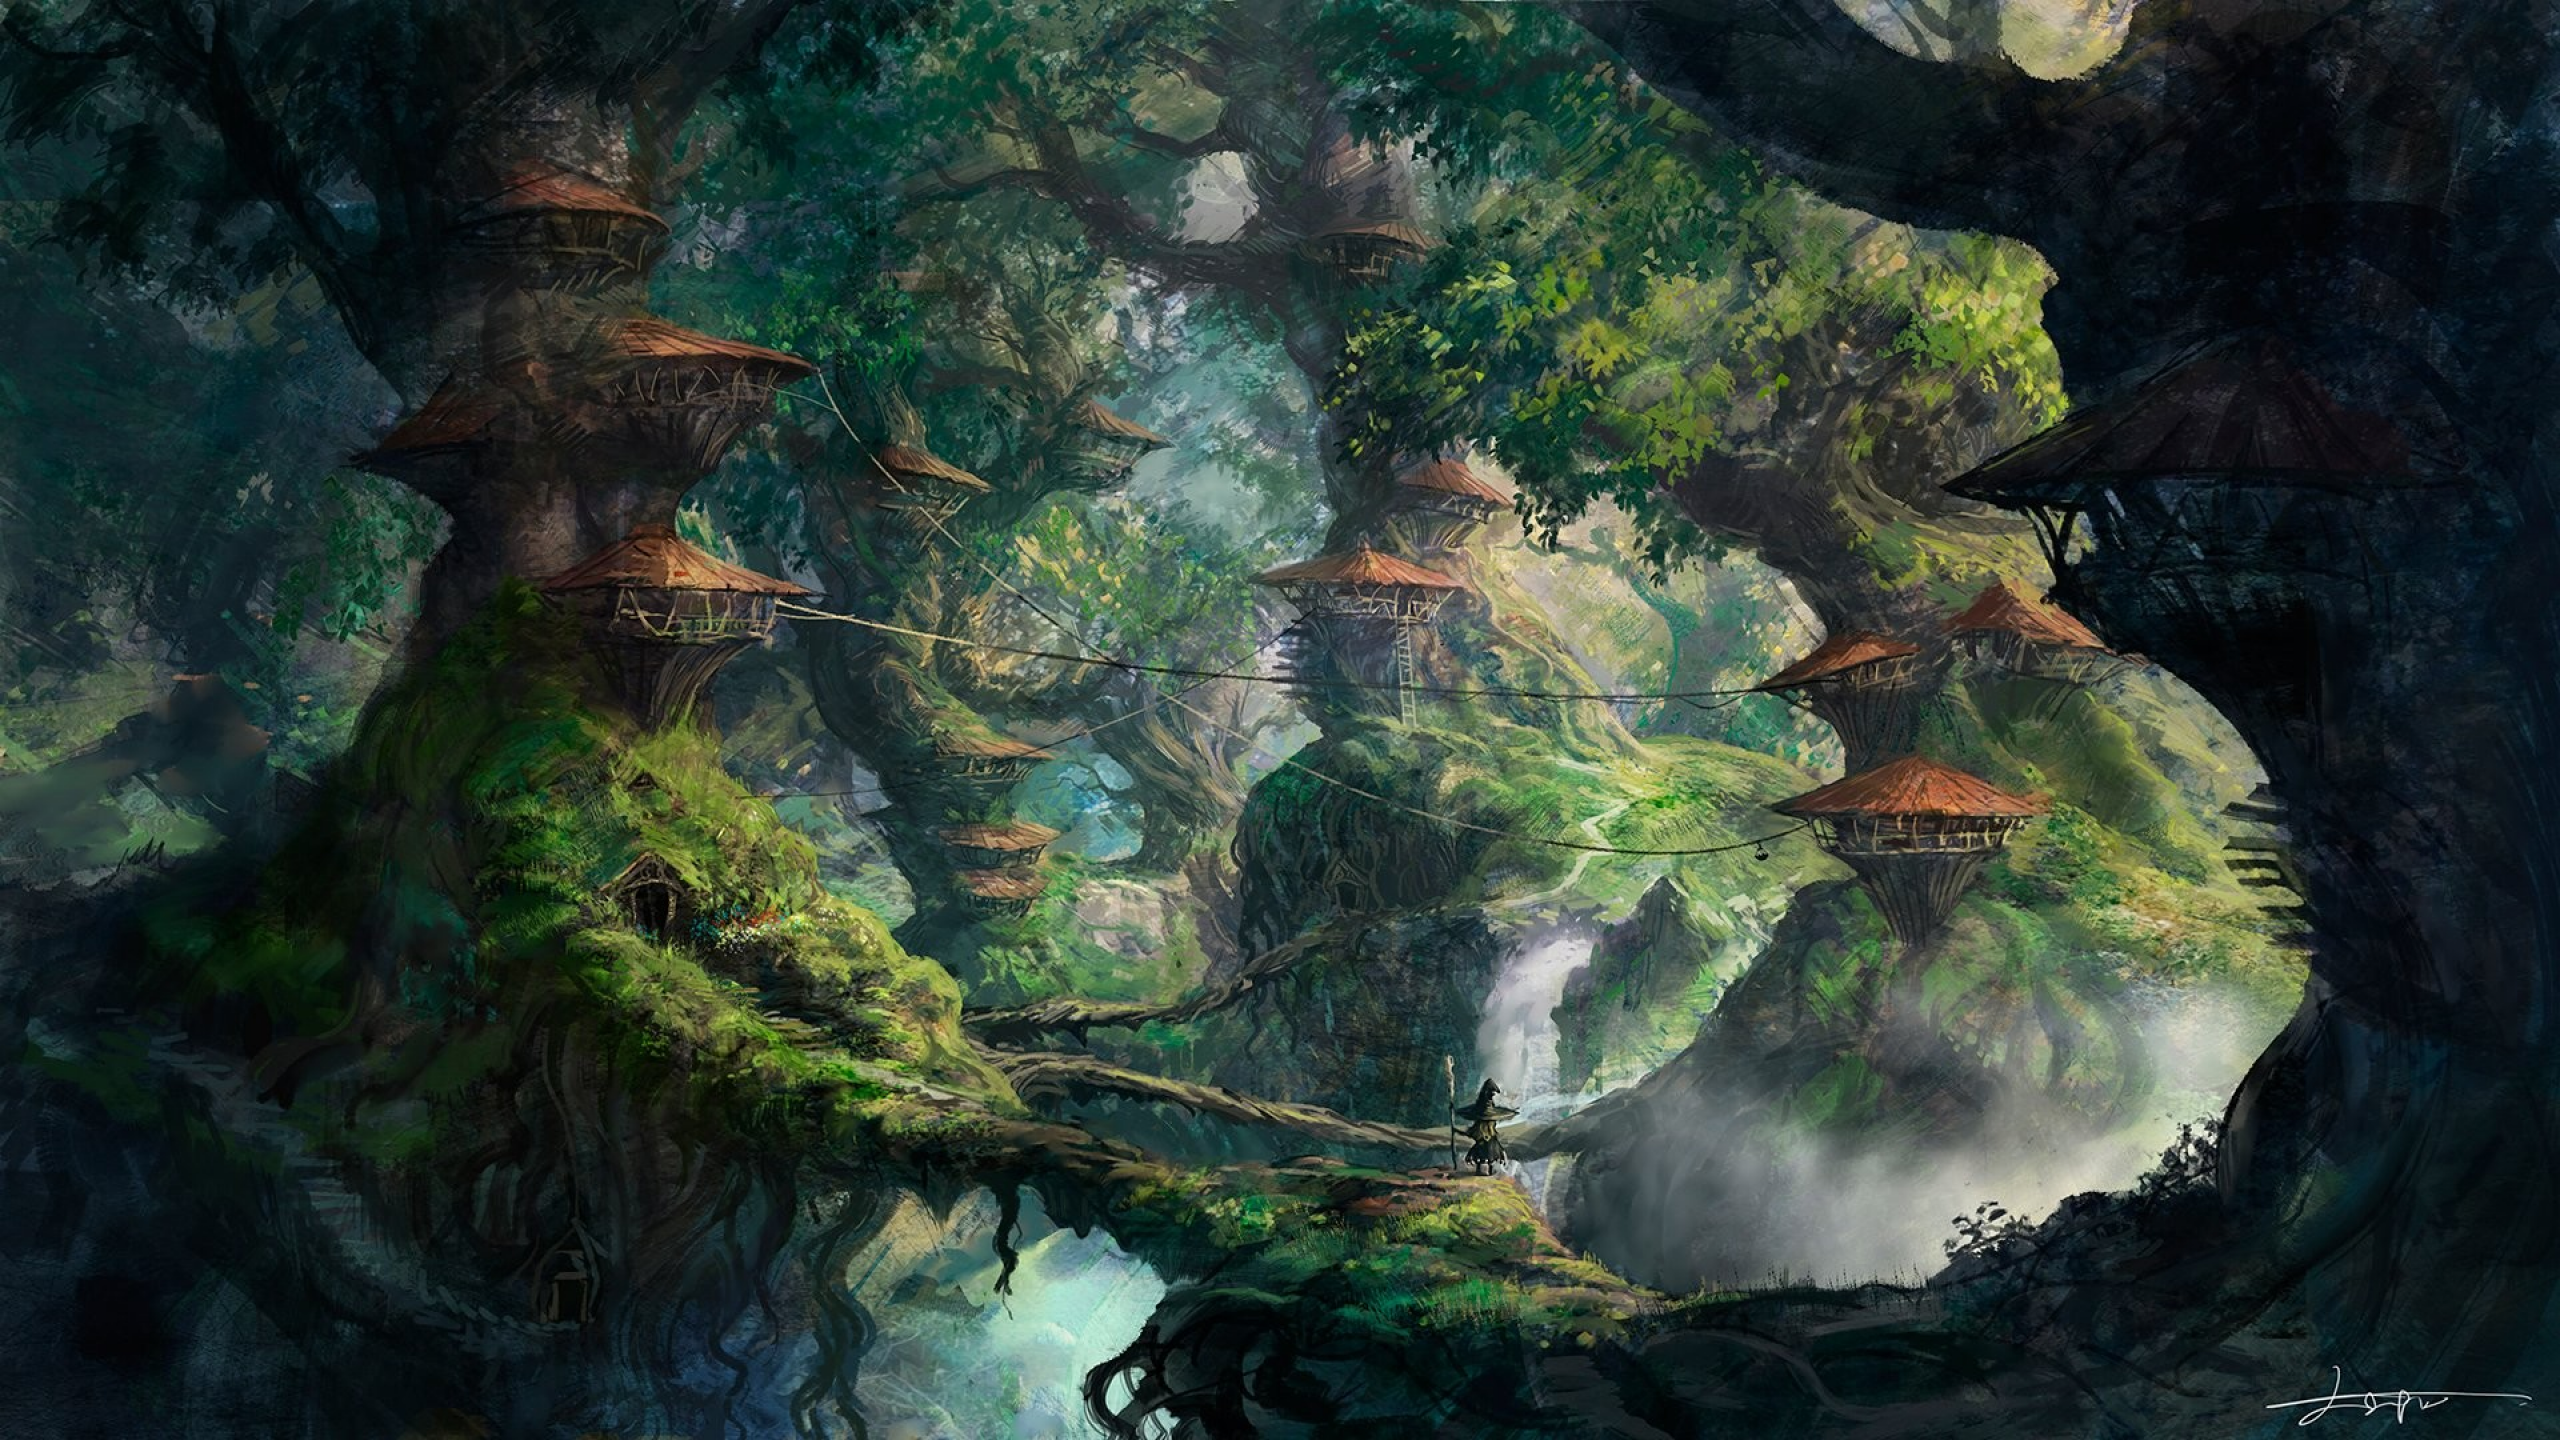 Download 2560x1440 fantasy art wizard forest trees for Home wallpaper jungle